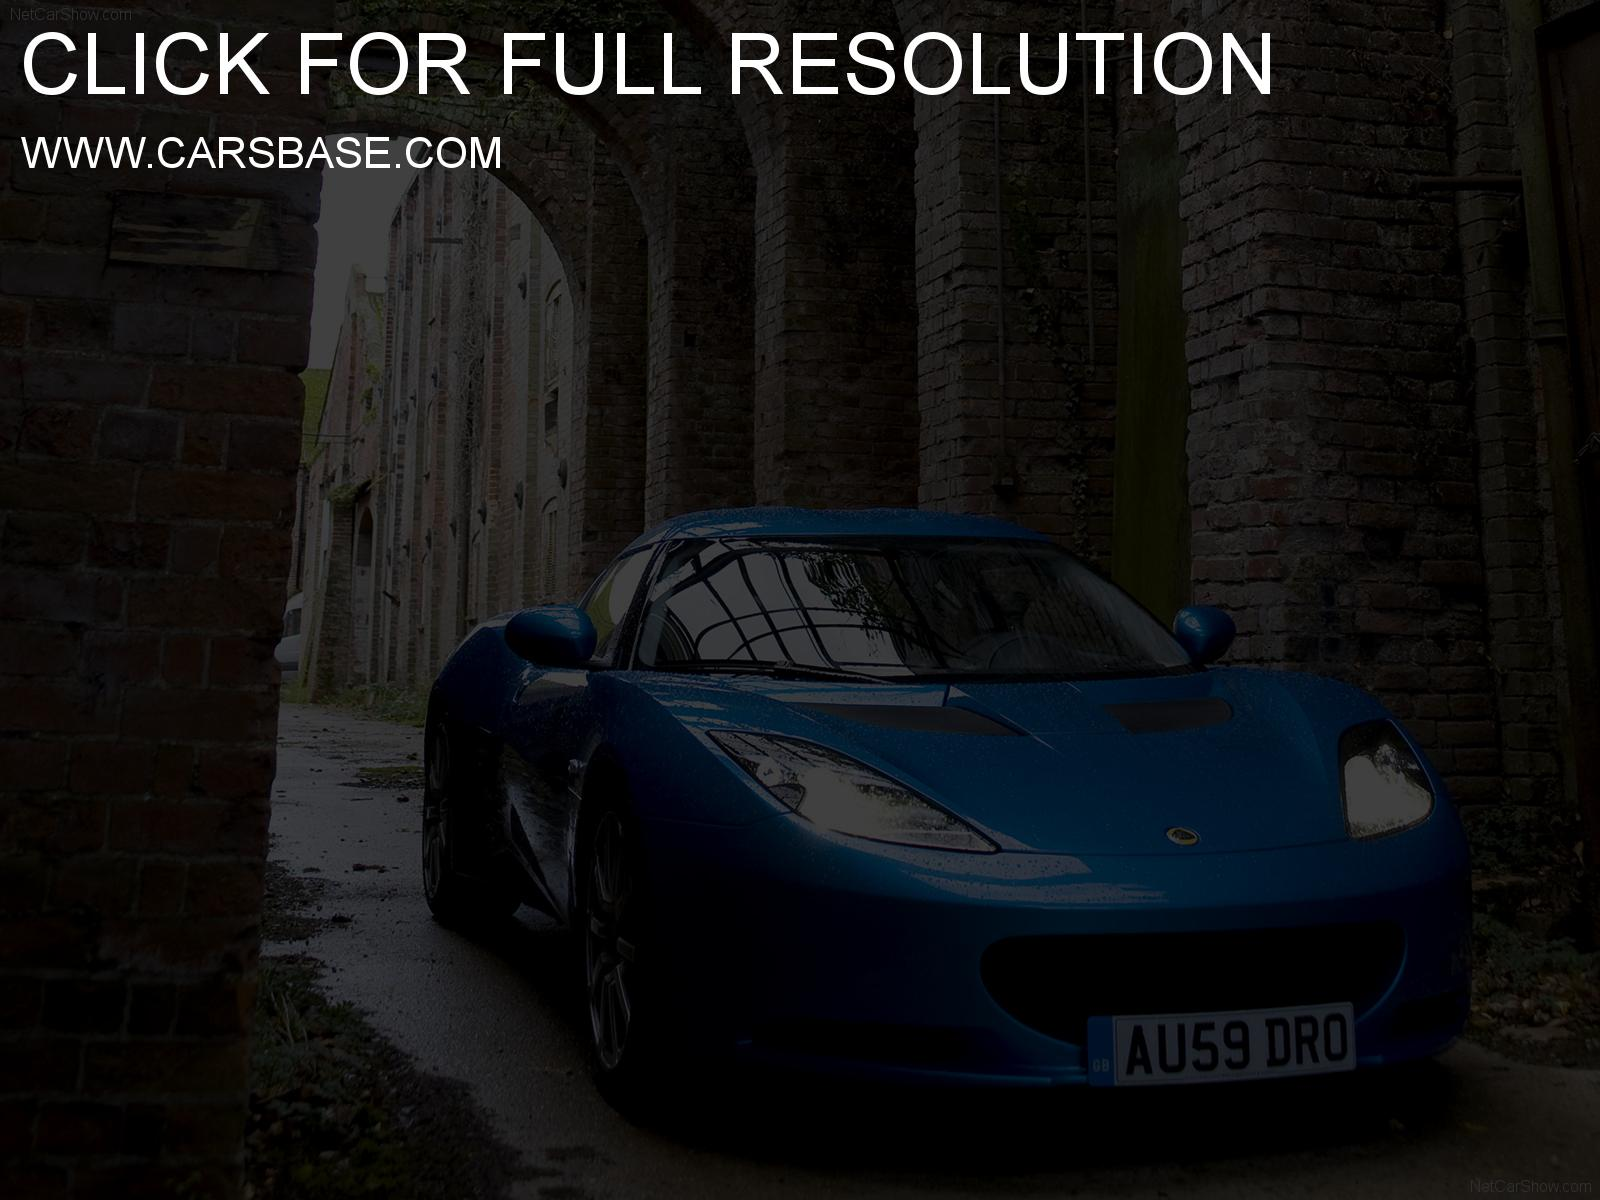 Lotus evora photo - 3